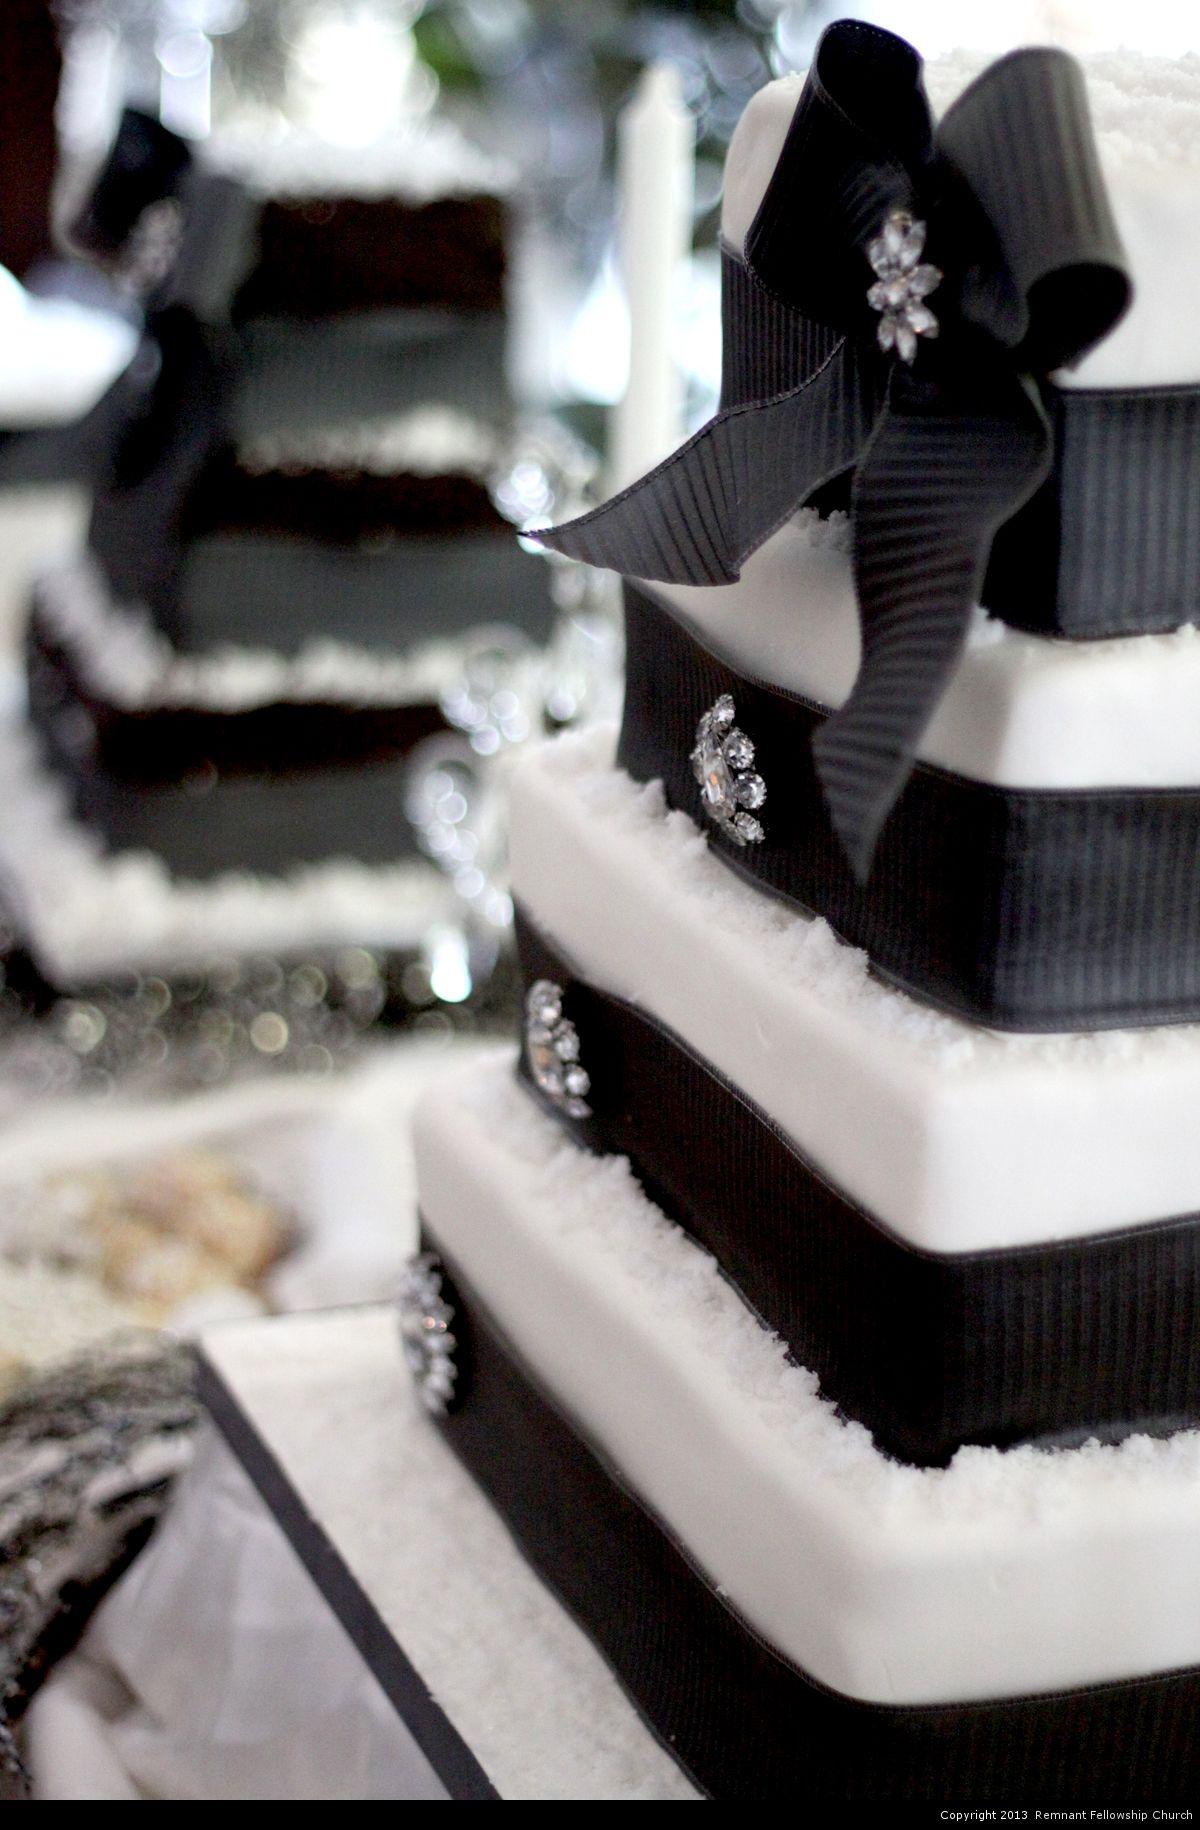 Remnant-Fellowship-Lorenz-Wedding-Cake